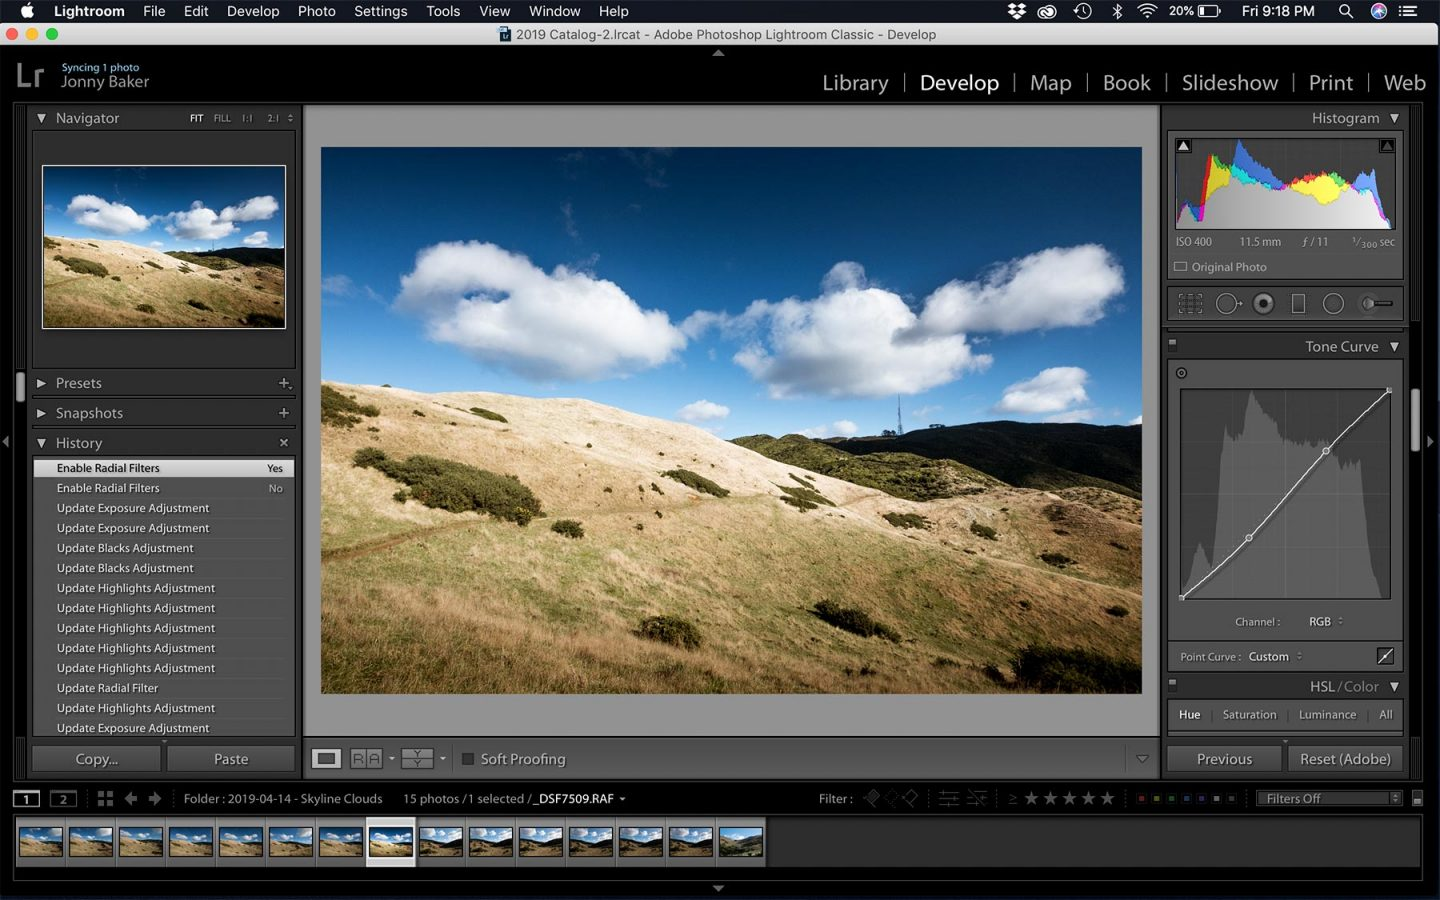 A screenshot of Lightroom Classic CC showing a landscape image being edited using some great Hacks.